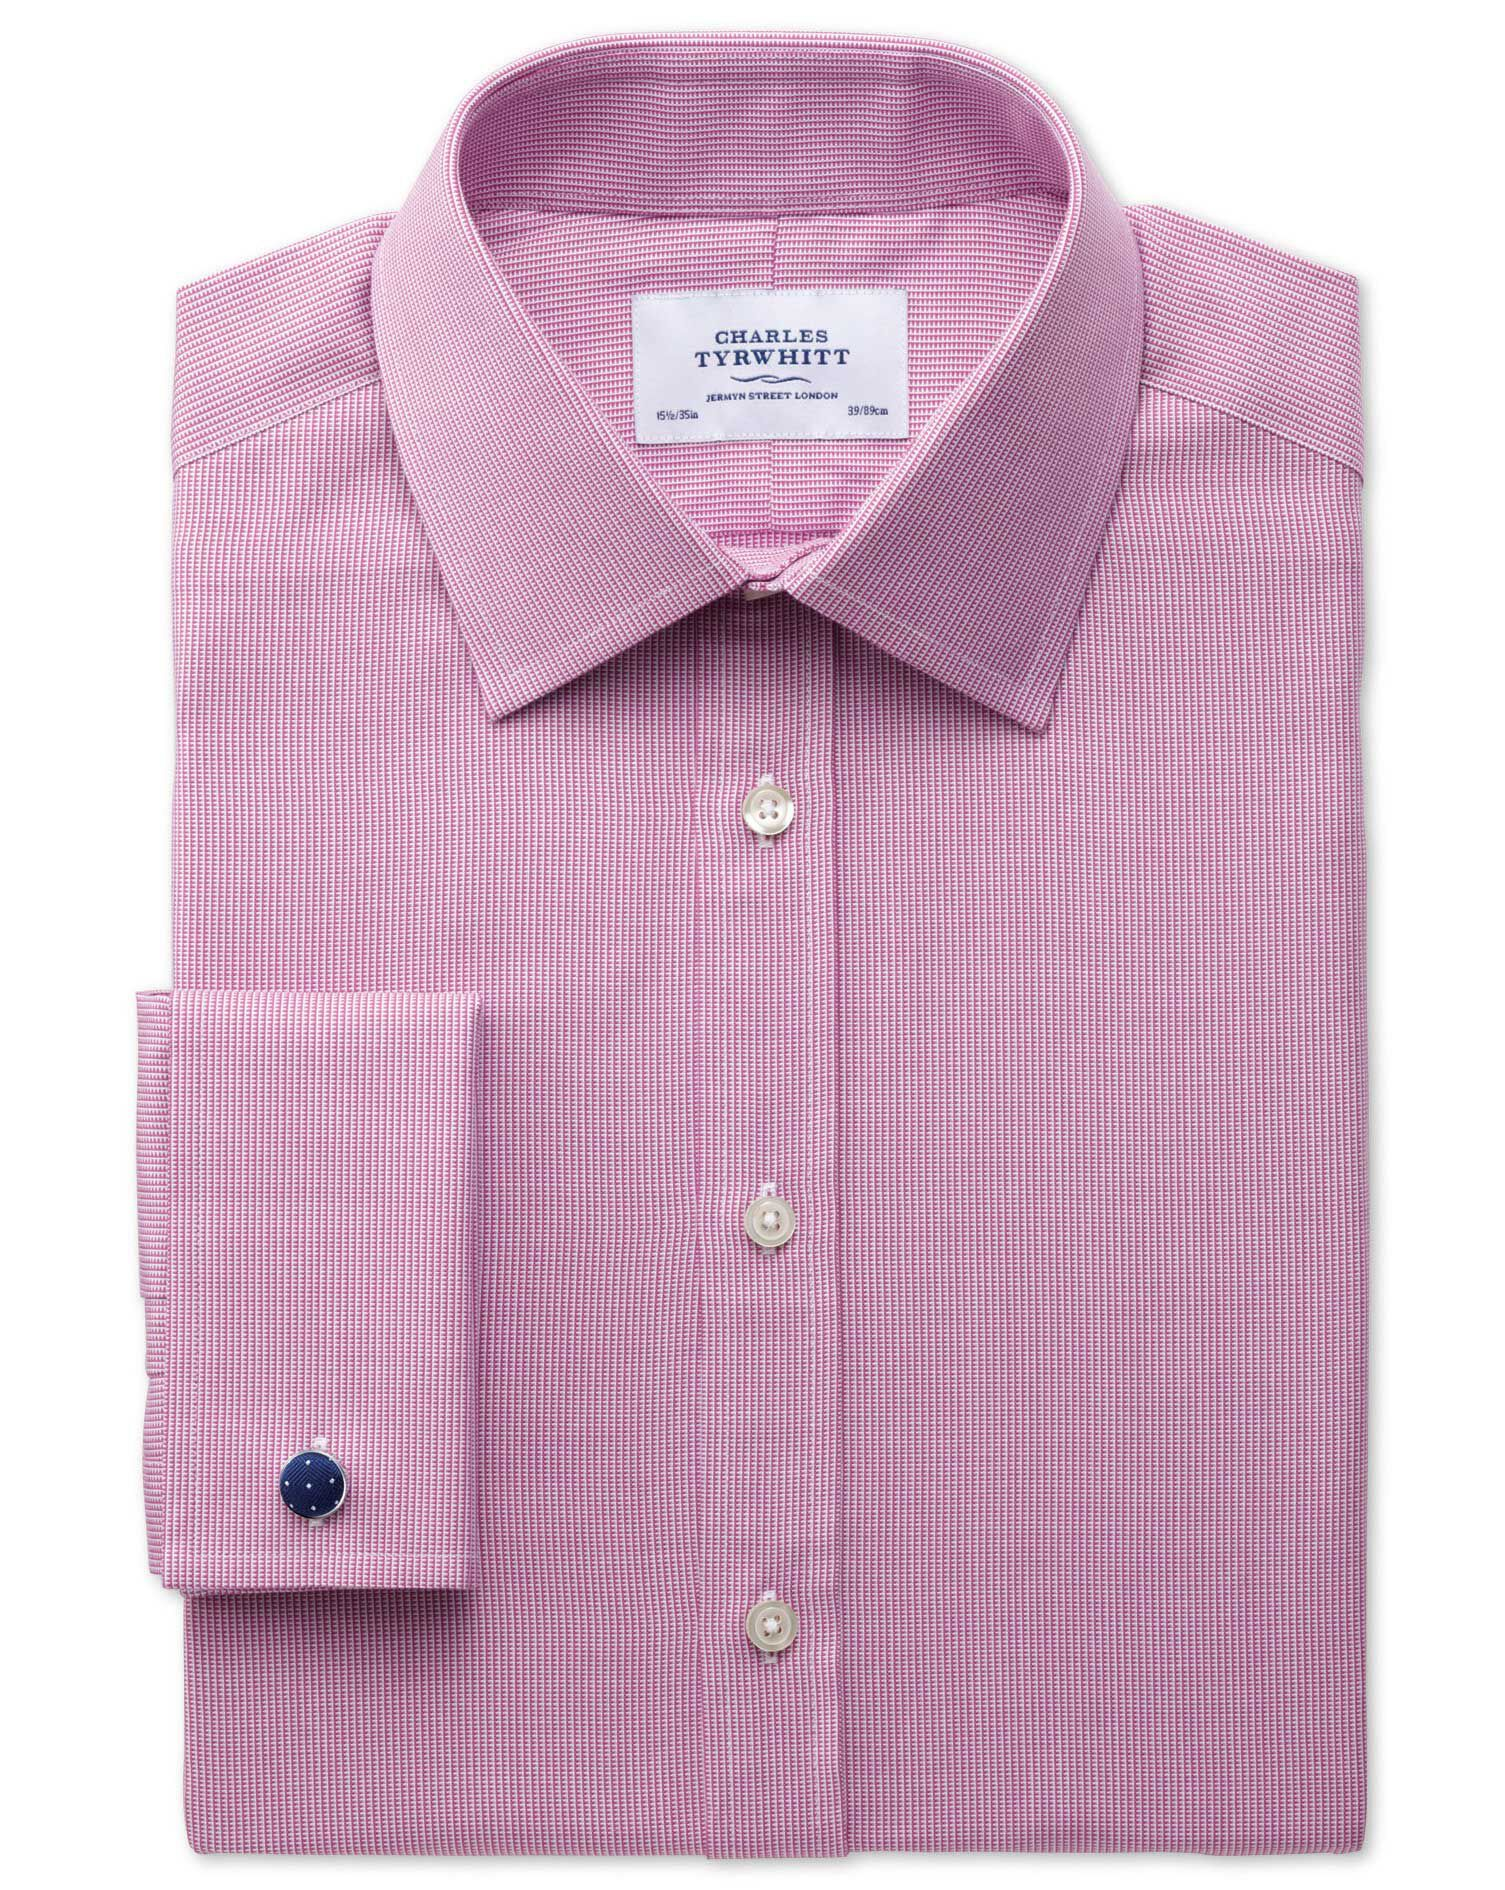 Slim Fit Oxford Magenta Cotton Formal Shirt Single Cuff Size 15.5/37 by Charles Tyrwhitt